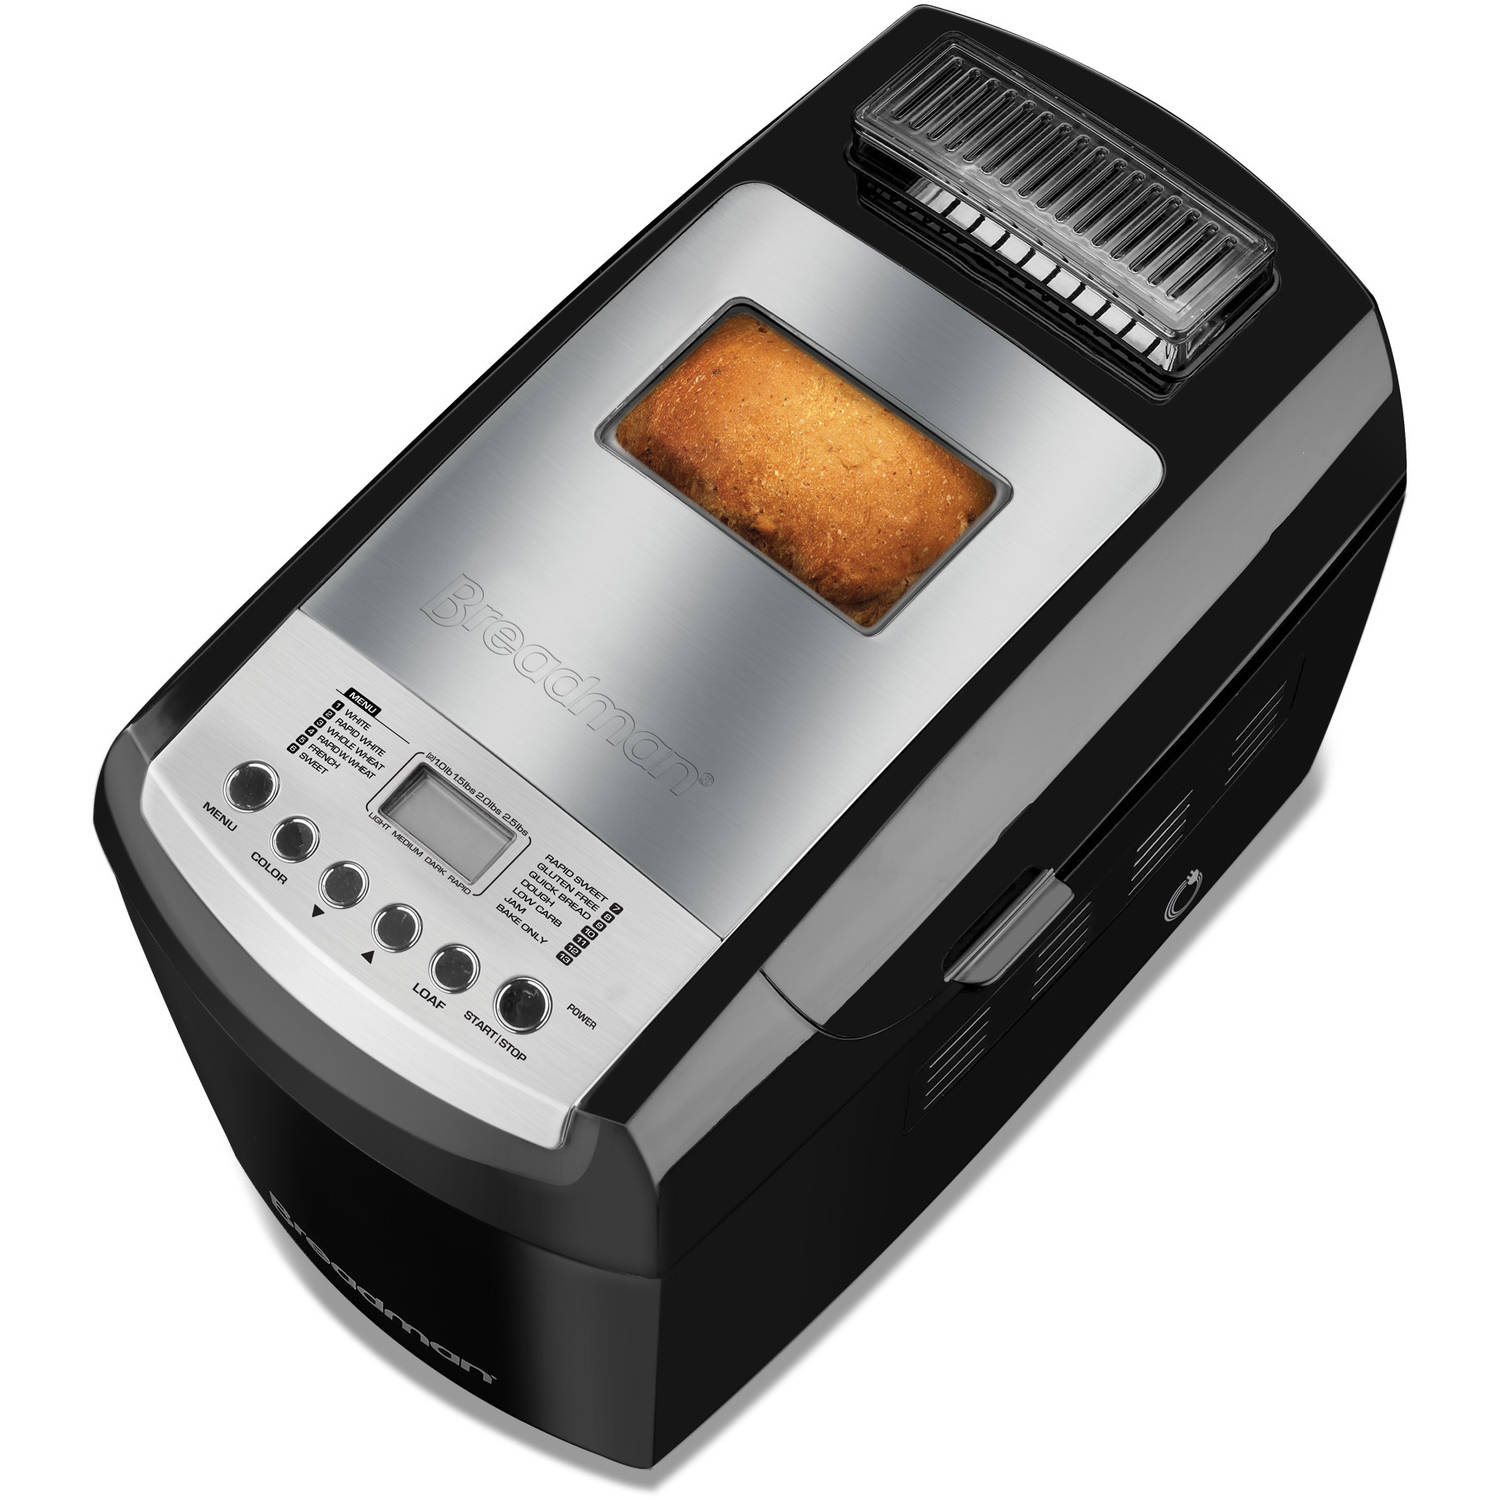 Breadman Bread Maker, Black